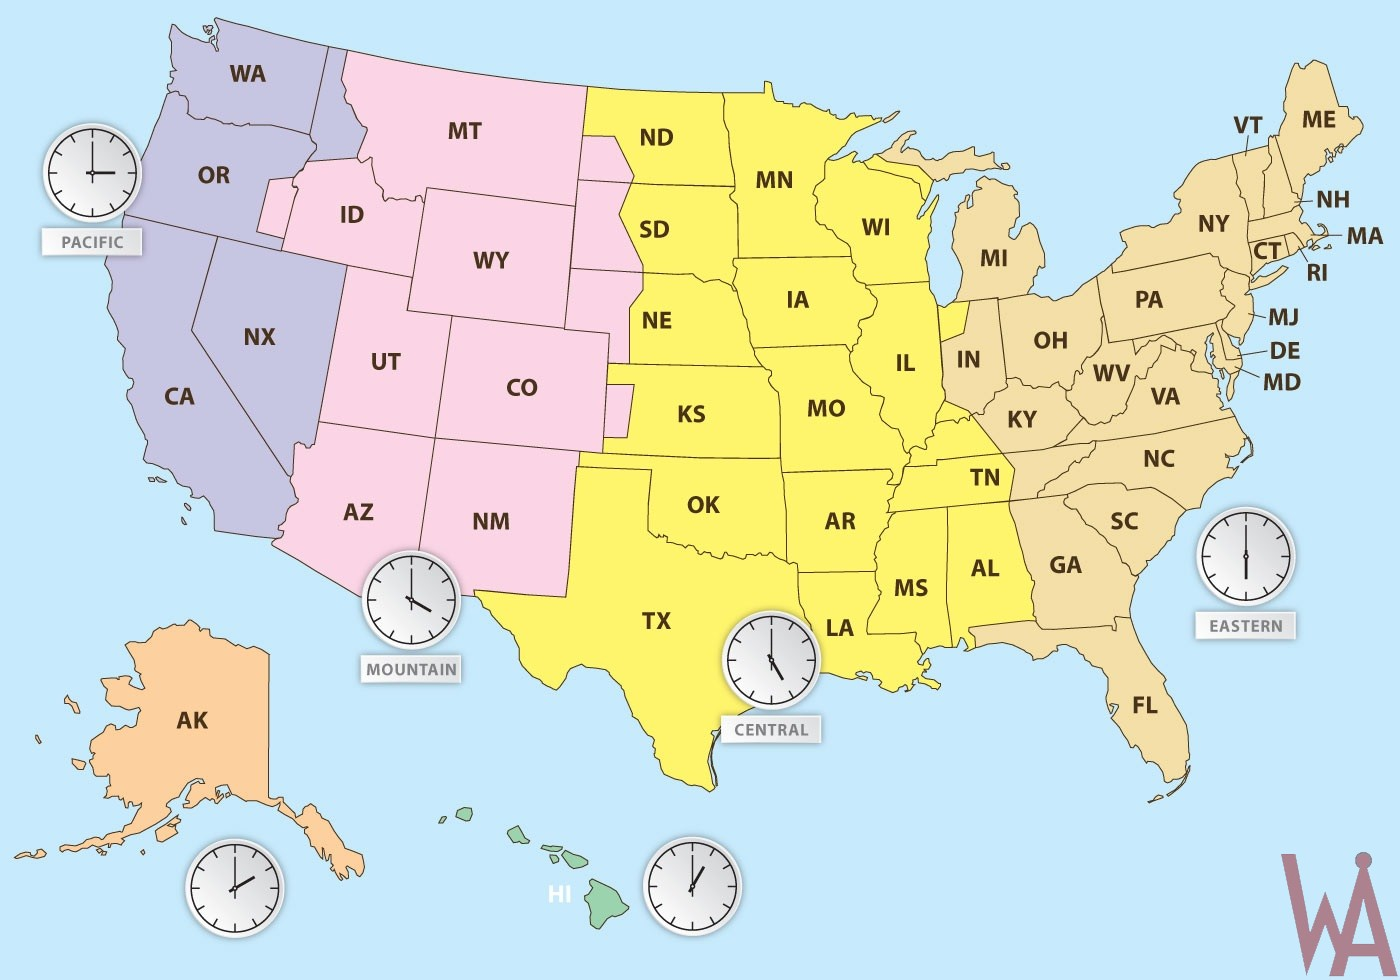 State wise Time Zone Map of the USA | WhatsAnswer on time zones usa, flow map usa, forestry map usa, section map usa, region map usa, yale map usa, territory map usa, range map usa, itu zone florida usa, dover map usa, map louisville ky usa, toronto map usa, fish map usa, network map usa, star map usa, area map usa, school map usa, zone maps south carolina, tornado zones in usa, zoom map usa,